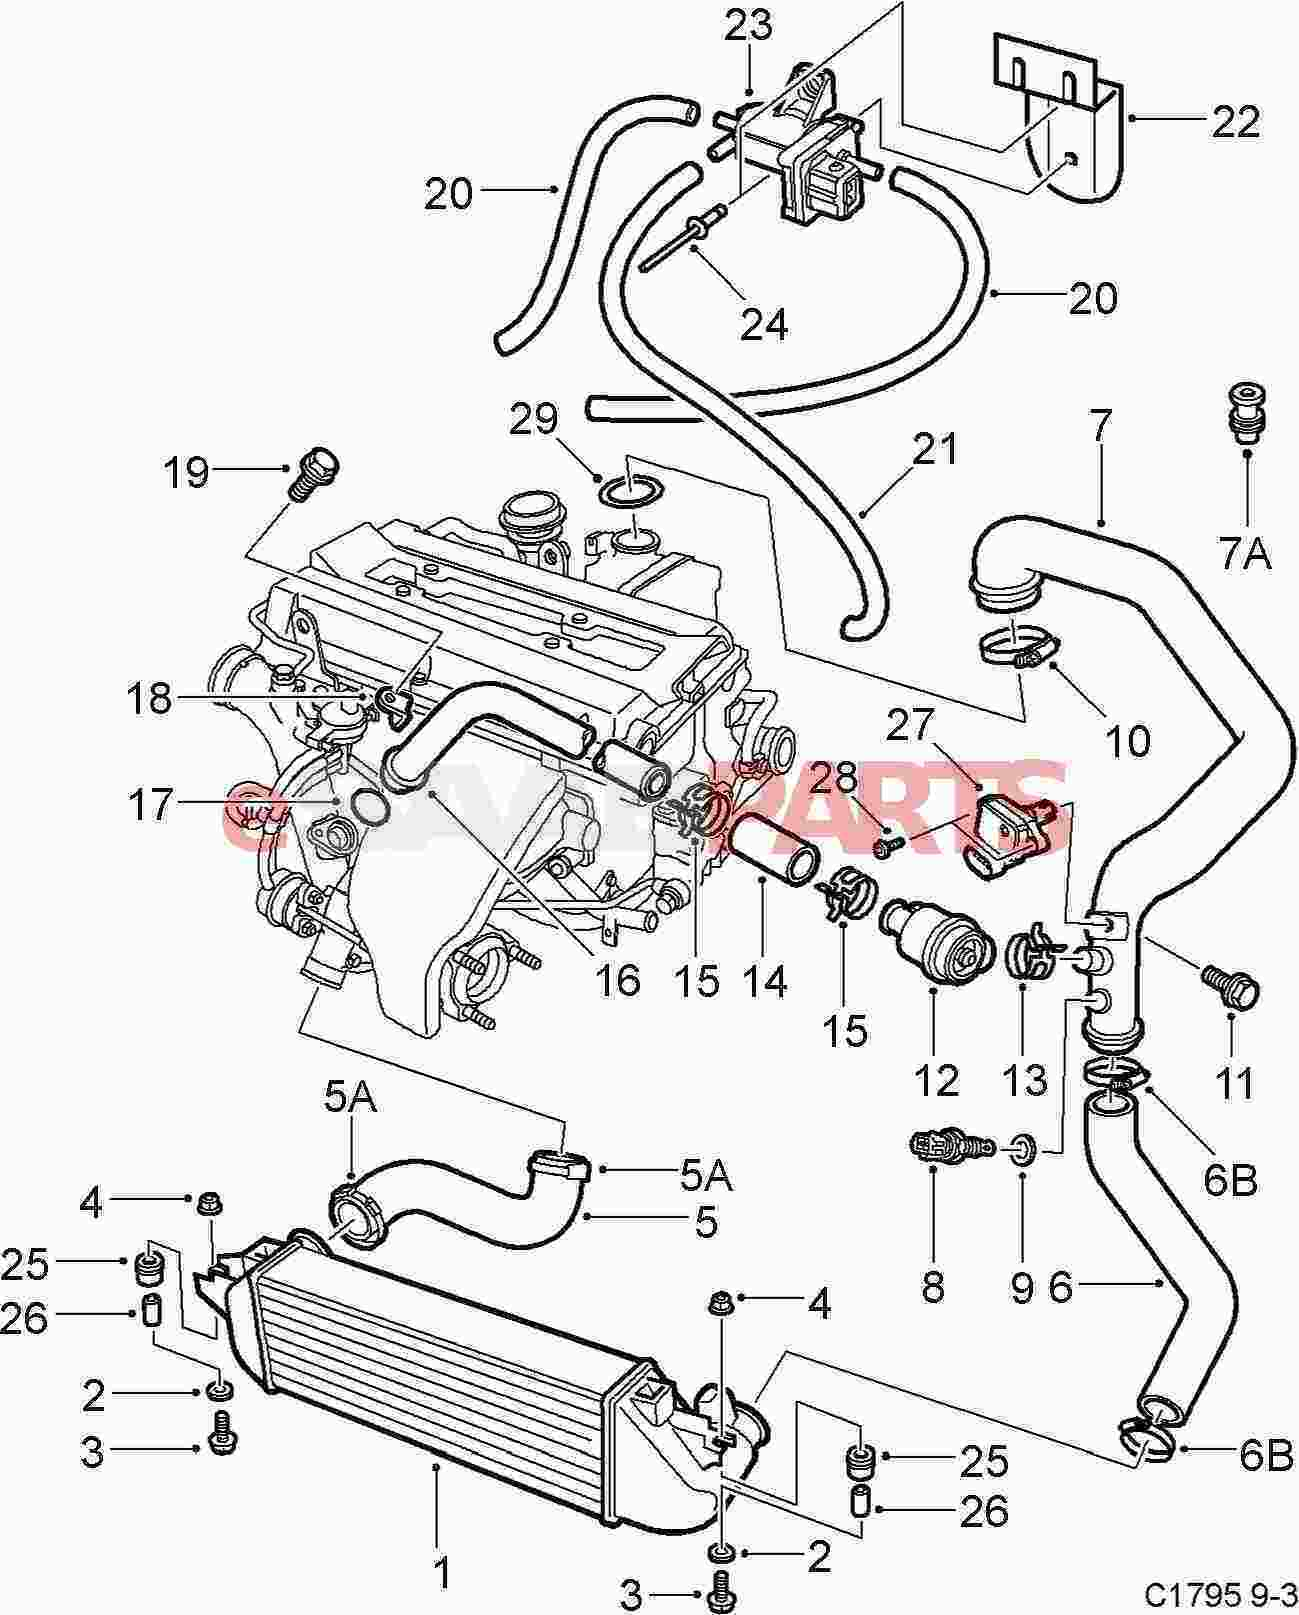 Saab 900 Turbo Wiring Diagram